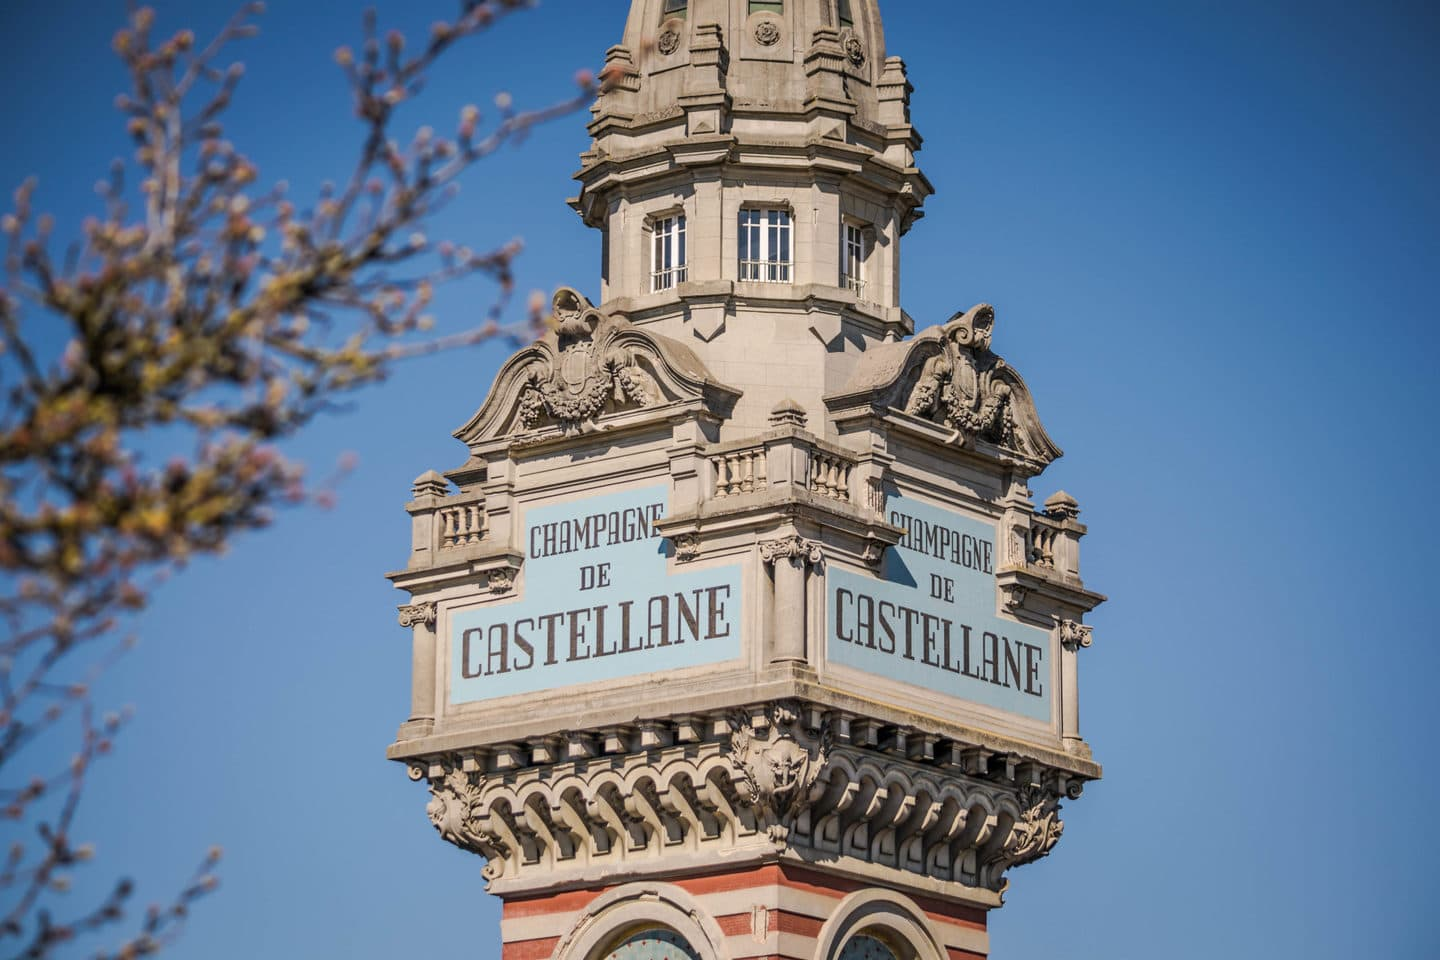 Visit the Maison de Castellane One of the most beautiful cellars in Epernay